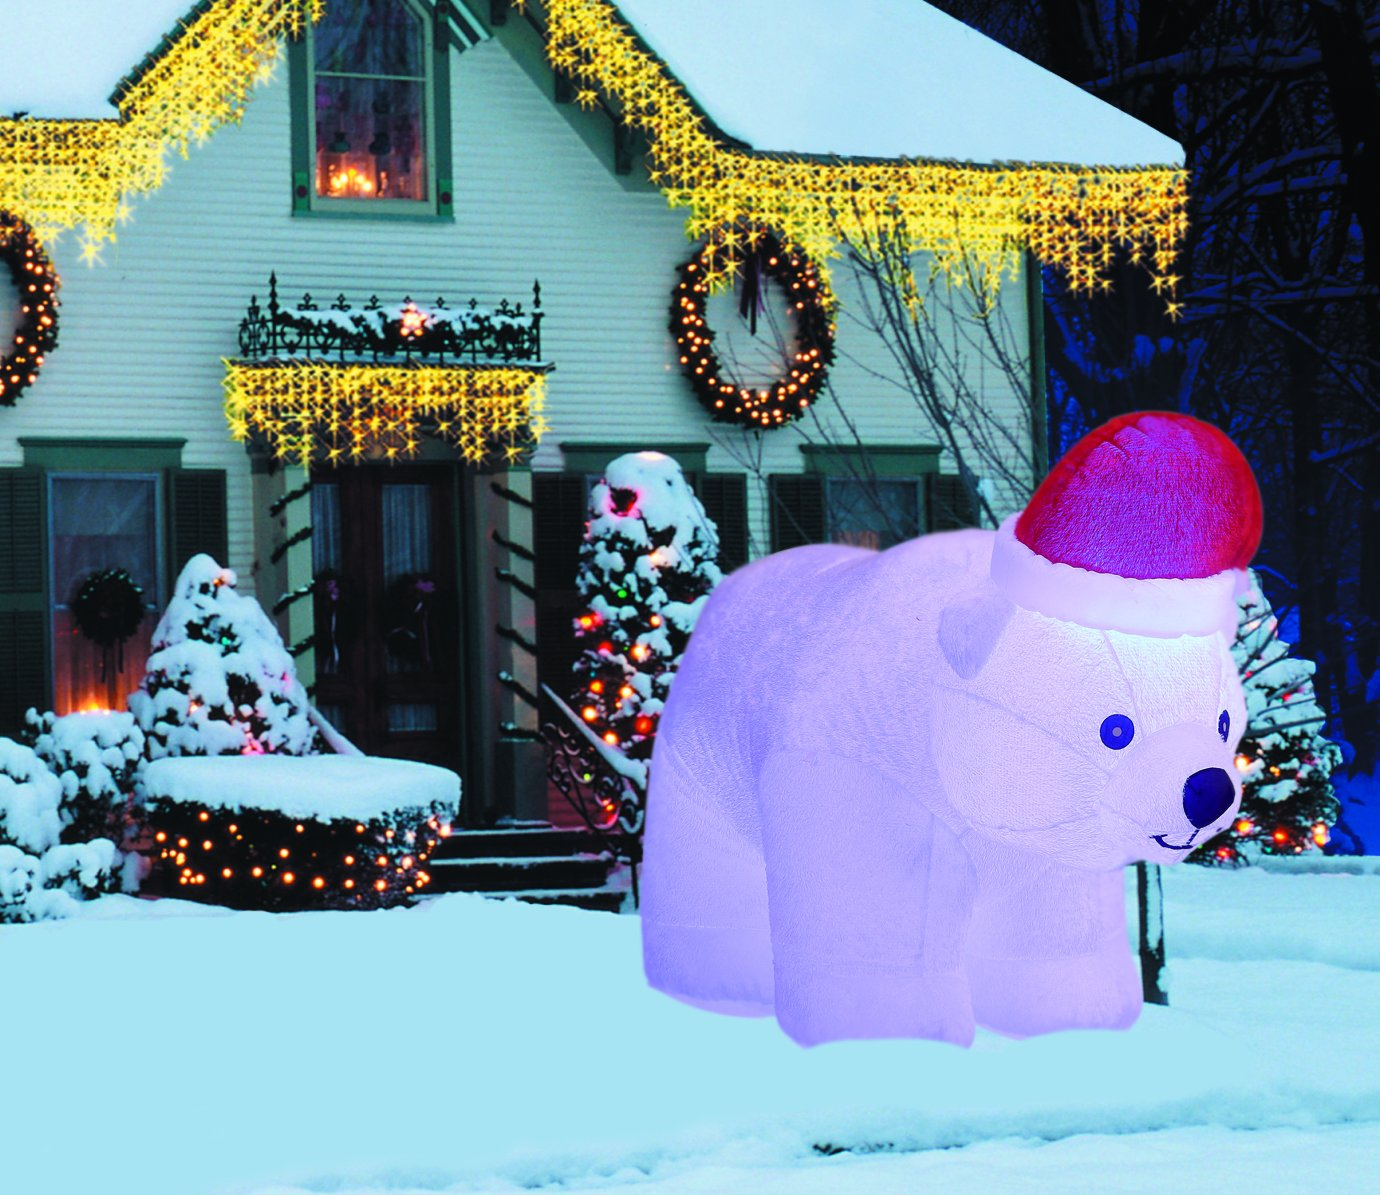 VIDAMORE 6.5 Foot Large Inflatable X-Mas Polar Bear LED Lighted Inflatables Outdoor Holiday Yard Lawn Decorations by Vidamore (Image #5)